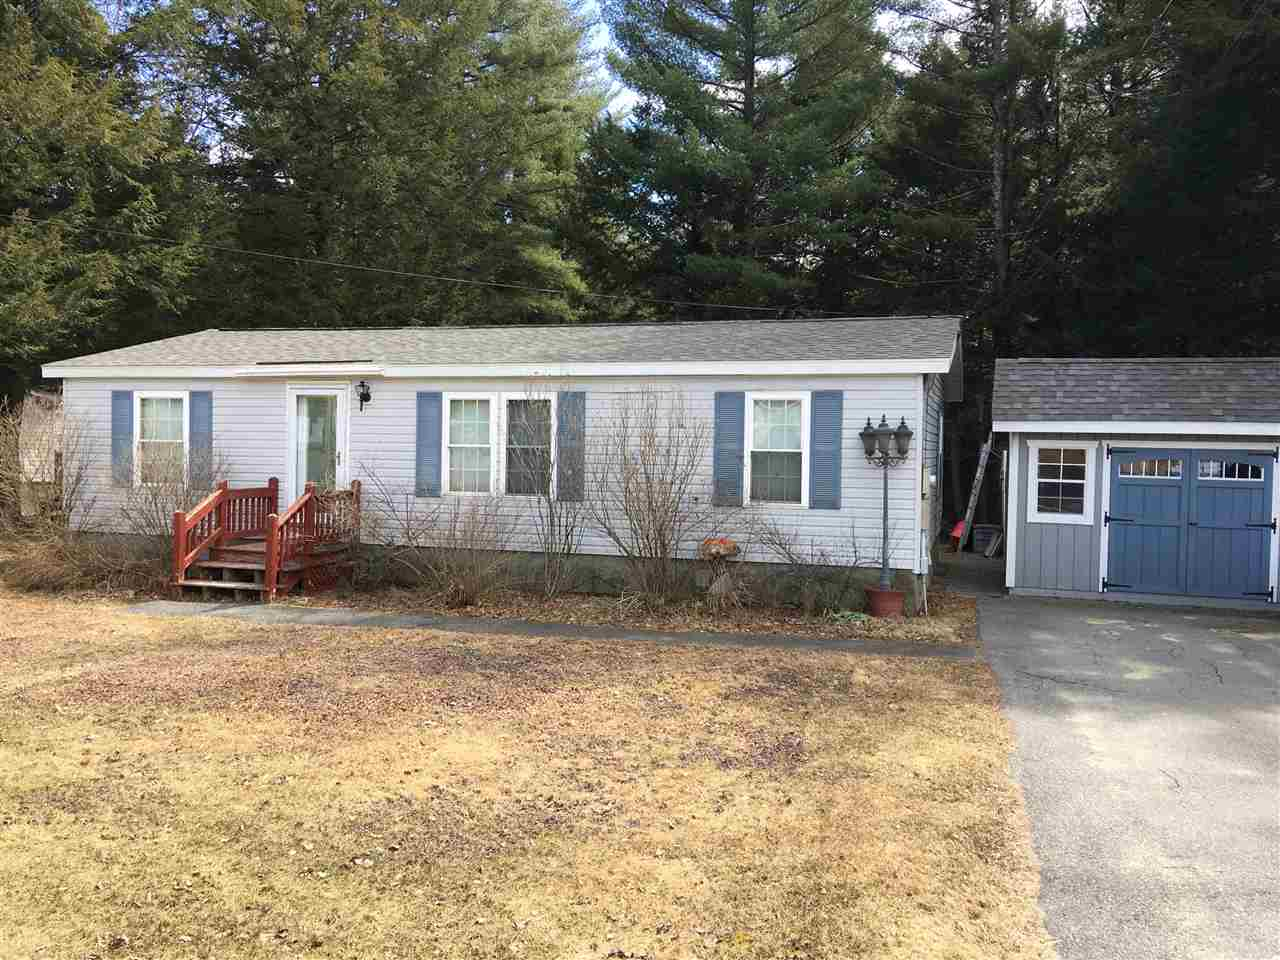 MLS 4745775: 48 Mountainview Road, Swanzey NH